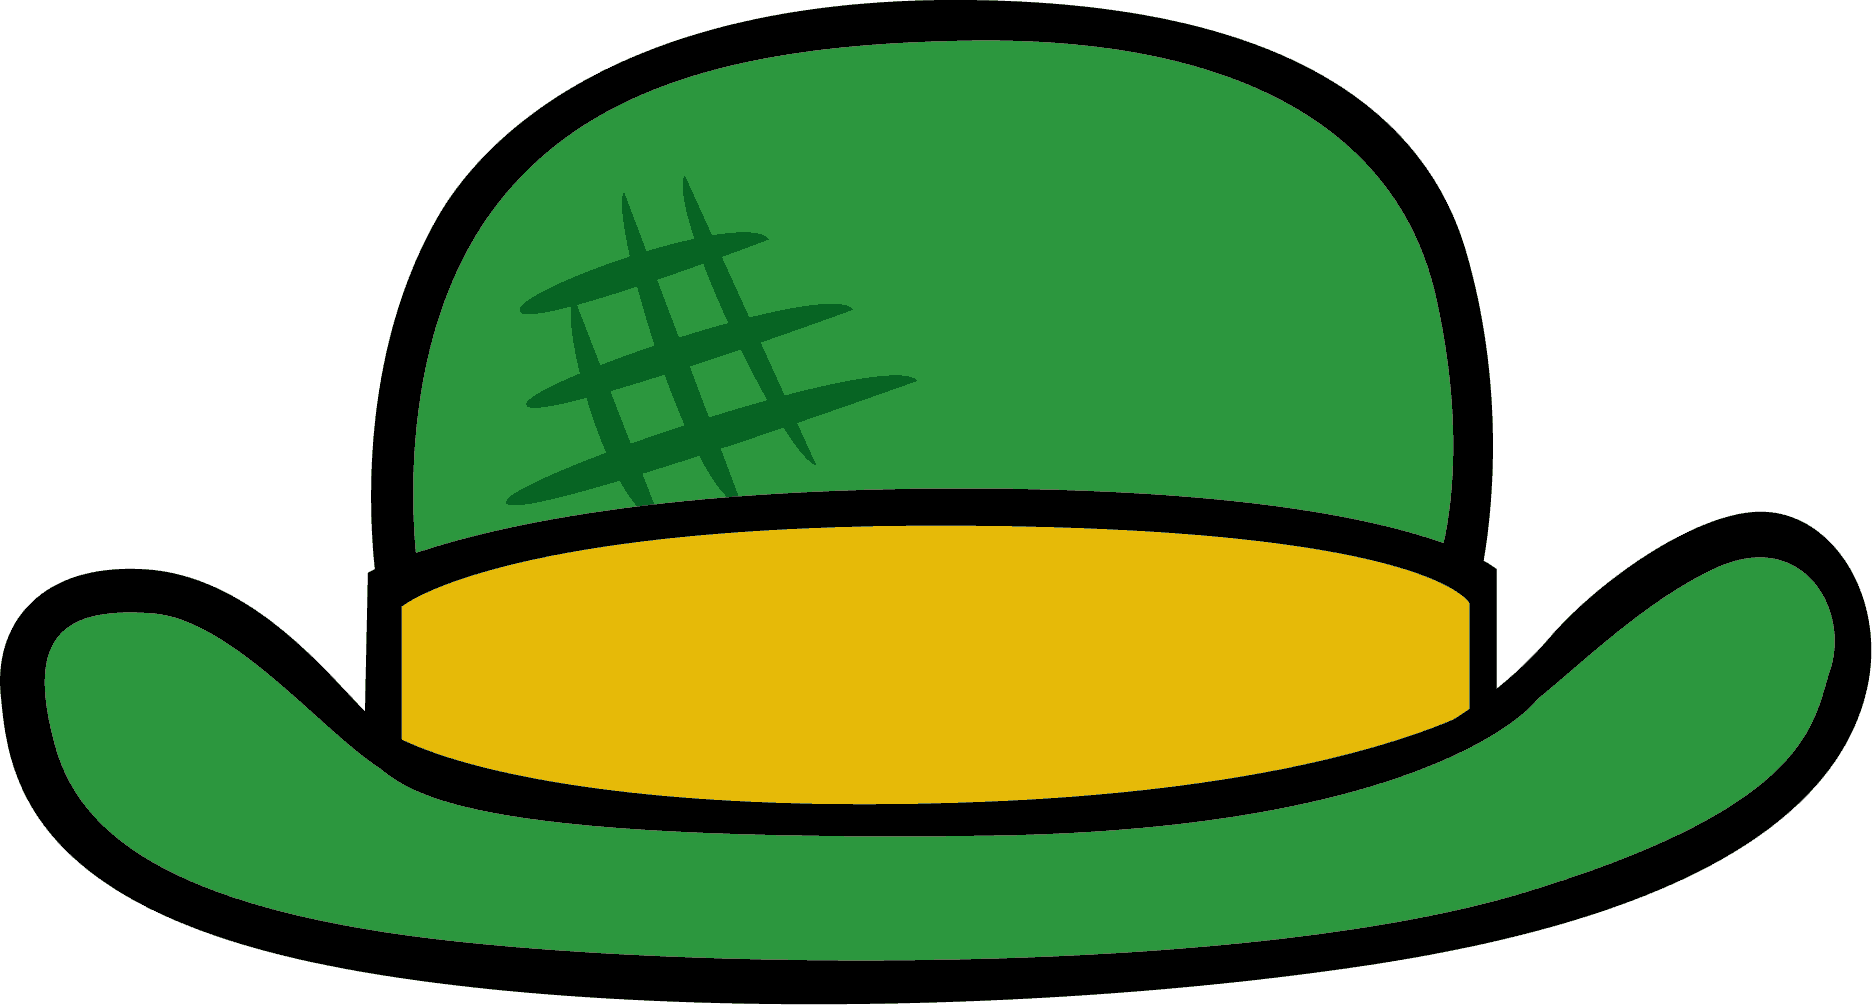 Hat clipart png image free stock Free Hats Cliparts, Download Free Clip Art, Free Clip Art on Clipart ... image free stock